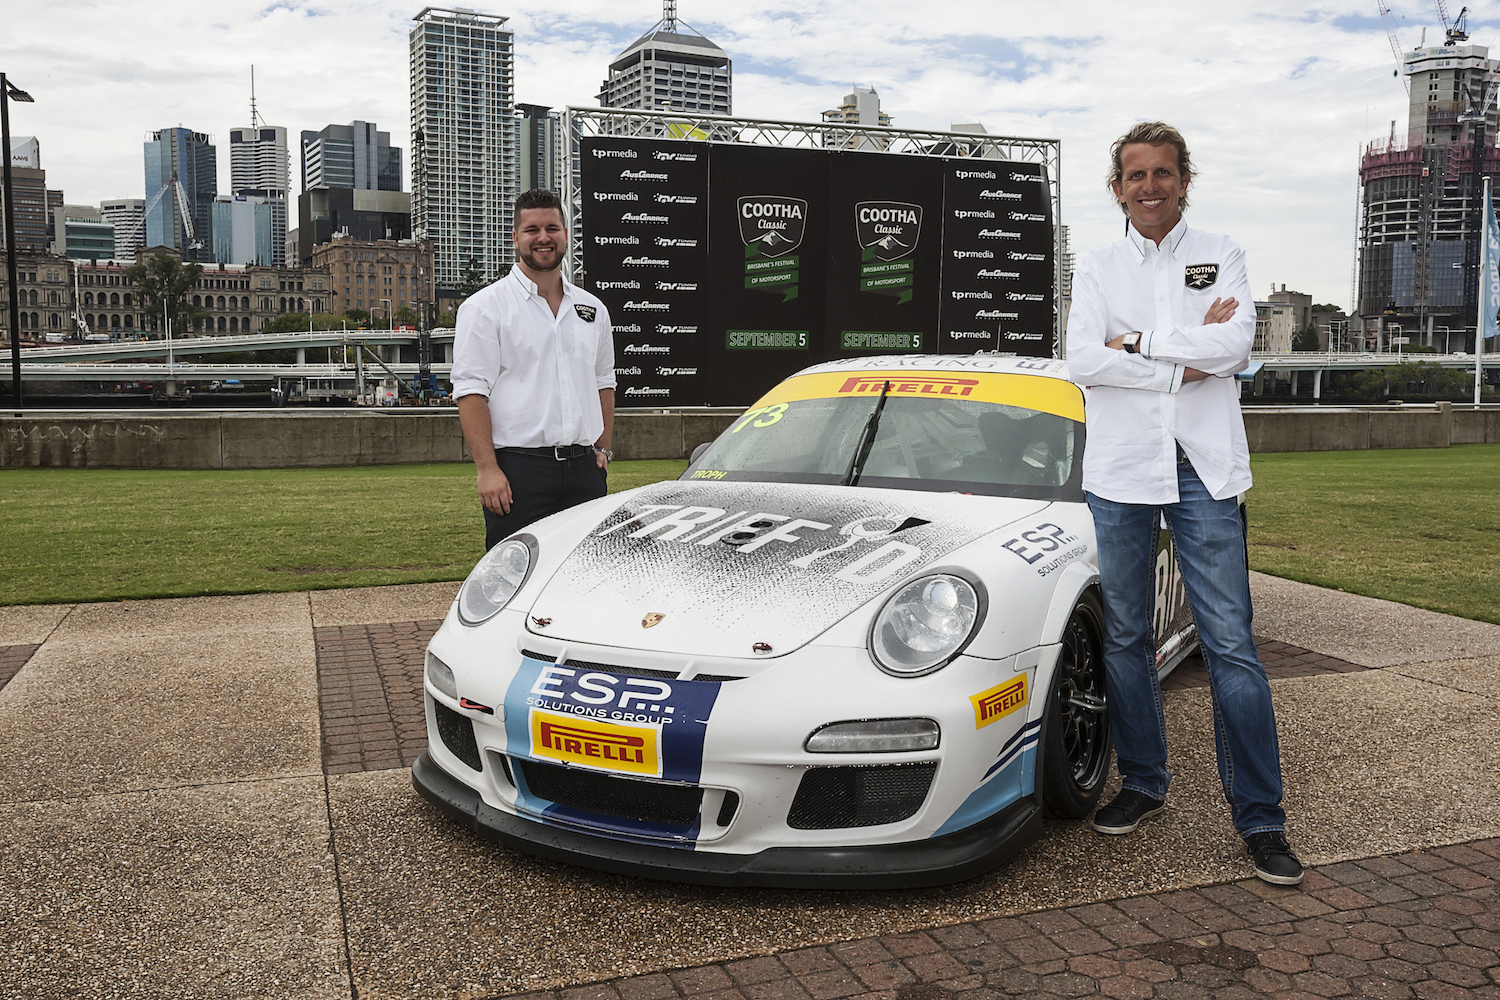 Cootha Classic event director James Payne with V8 supercar driver and event ambassador Warren Luff at the Cootha Classic launch. March 18, 2015. (Photo: Scott Nelson, TPR Media).